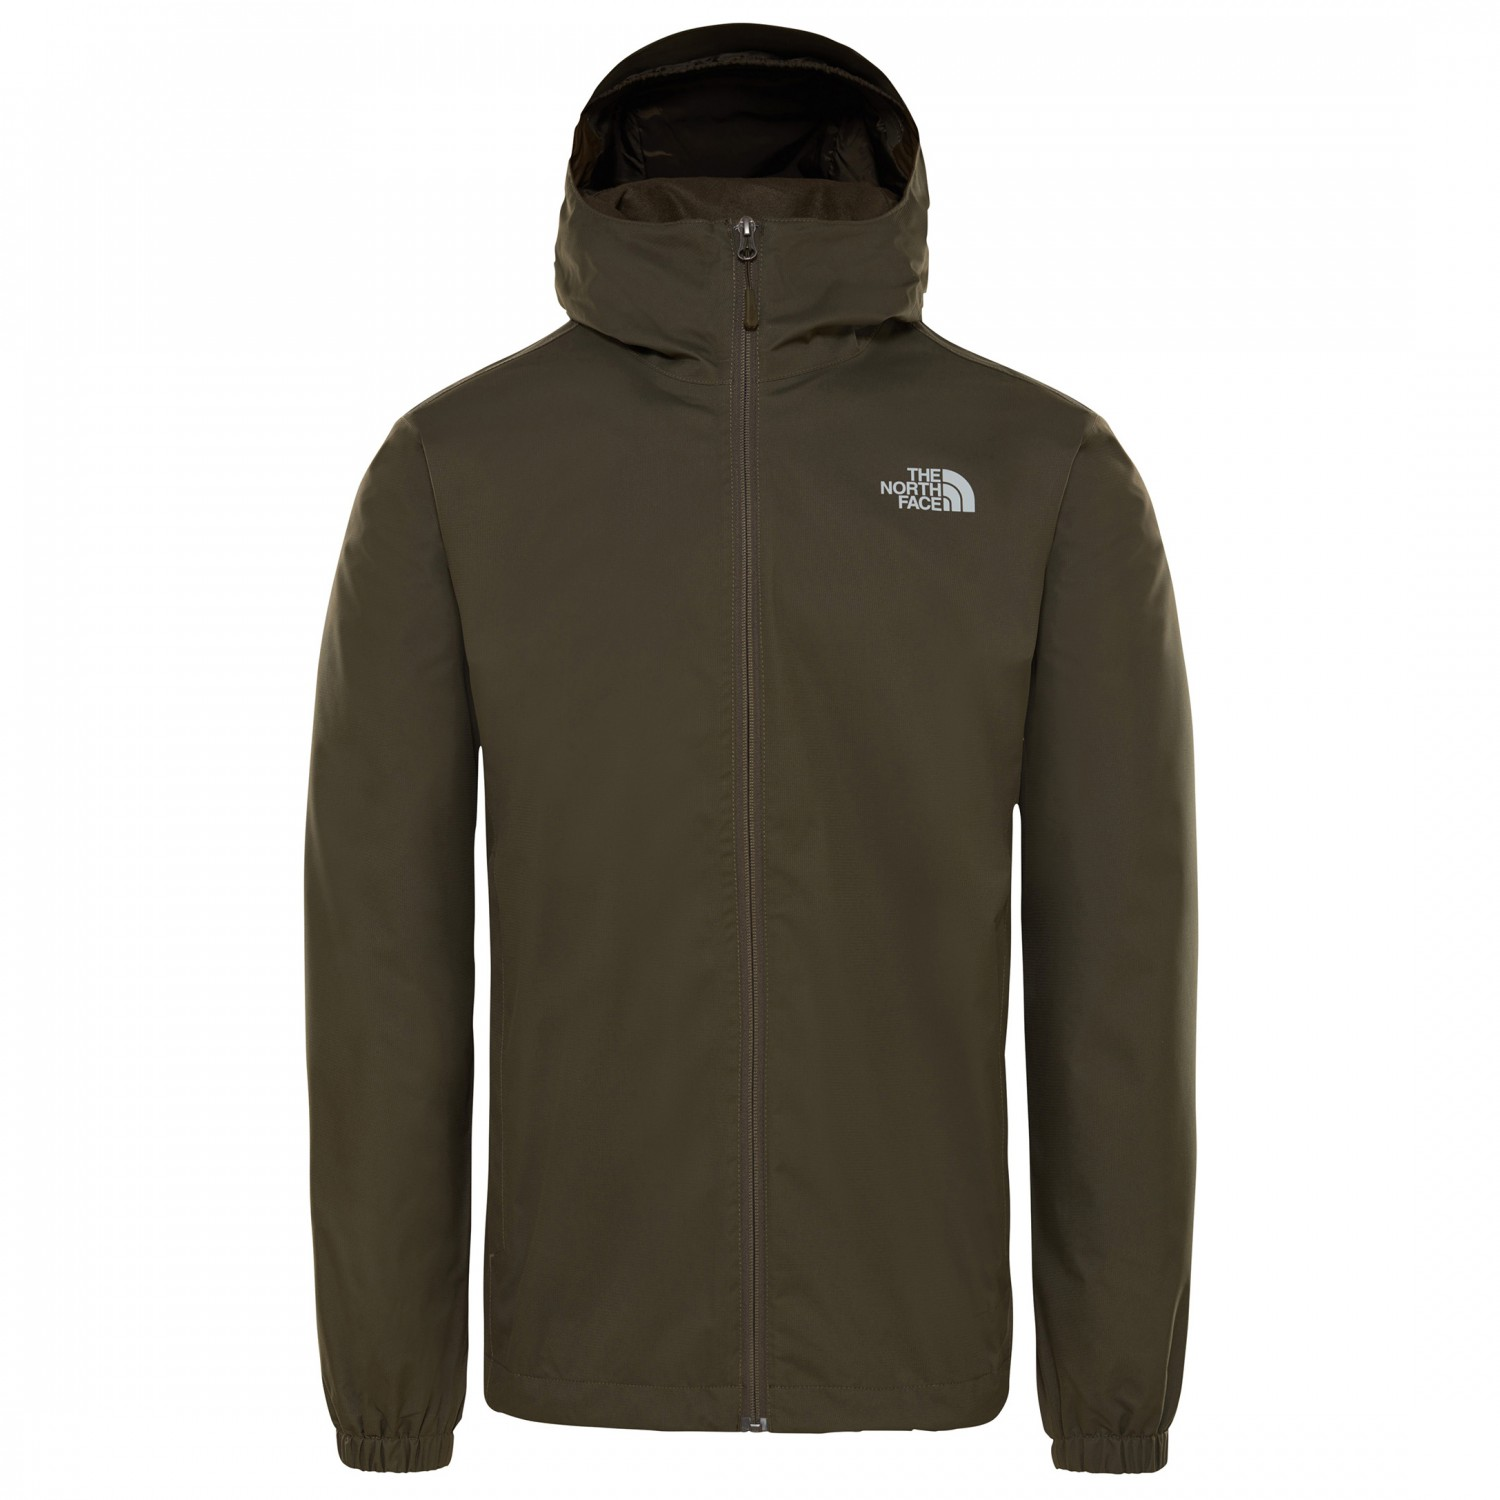 8c212a9c4e The North Face Quest Jacket - Veste imperméable Homme | Livraison ...